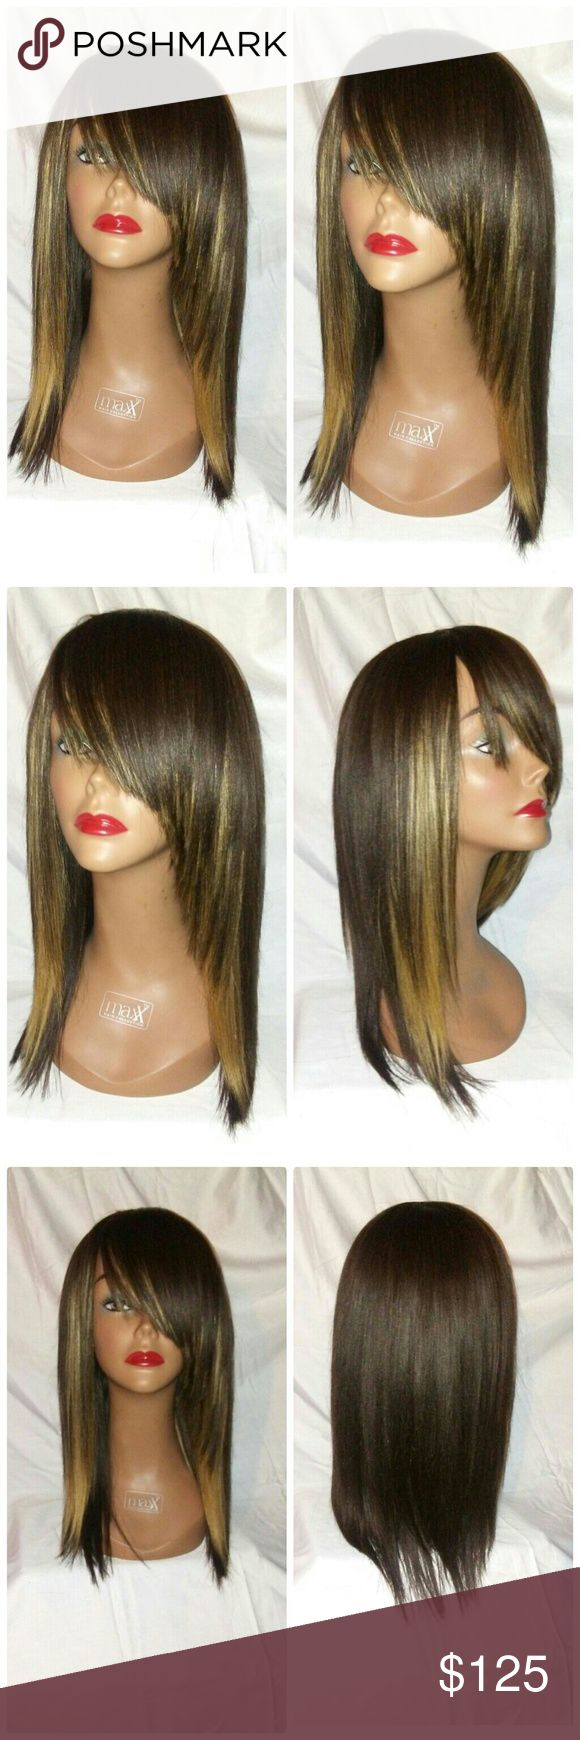 """100% human hair wig with side bangs 12"""" Brand new custom made full wig cap with side bangs color 2/27 brown/ blonde  Length 12""""   Texture: straight   Style: razor cut wig cap with side bangs 100% human hair wig( no blended or synthetic hair).   Color: 2/27 brown/ blonde   fit medium to large head.  density. 150% can shampoo.  can flat iron with temperature 450 or above.    Note: These wigs or made in my salon using a light weight wig cap stretchable to fit any size head, each track or sew on…"""